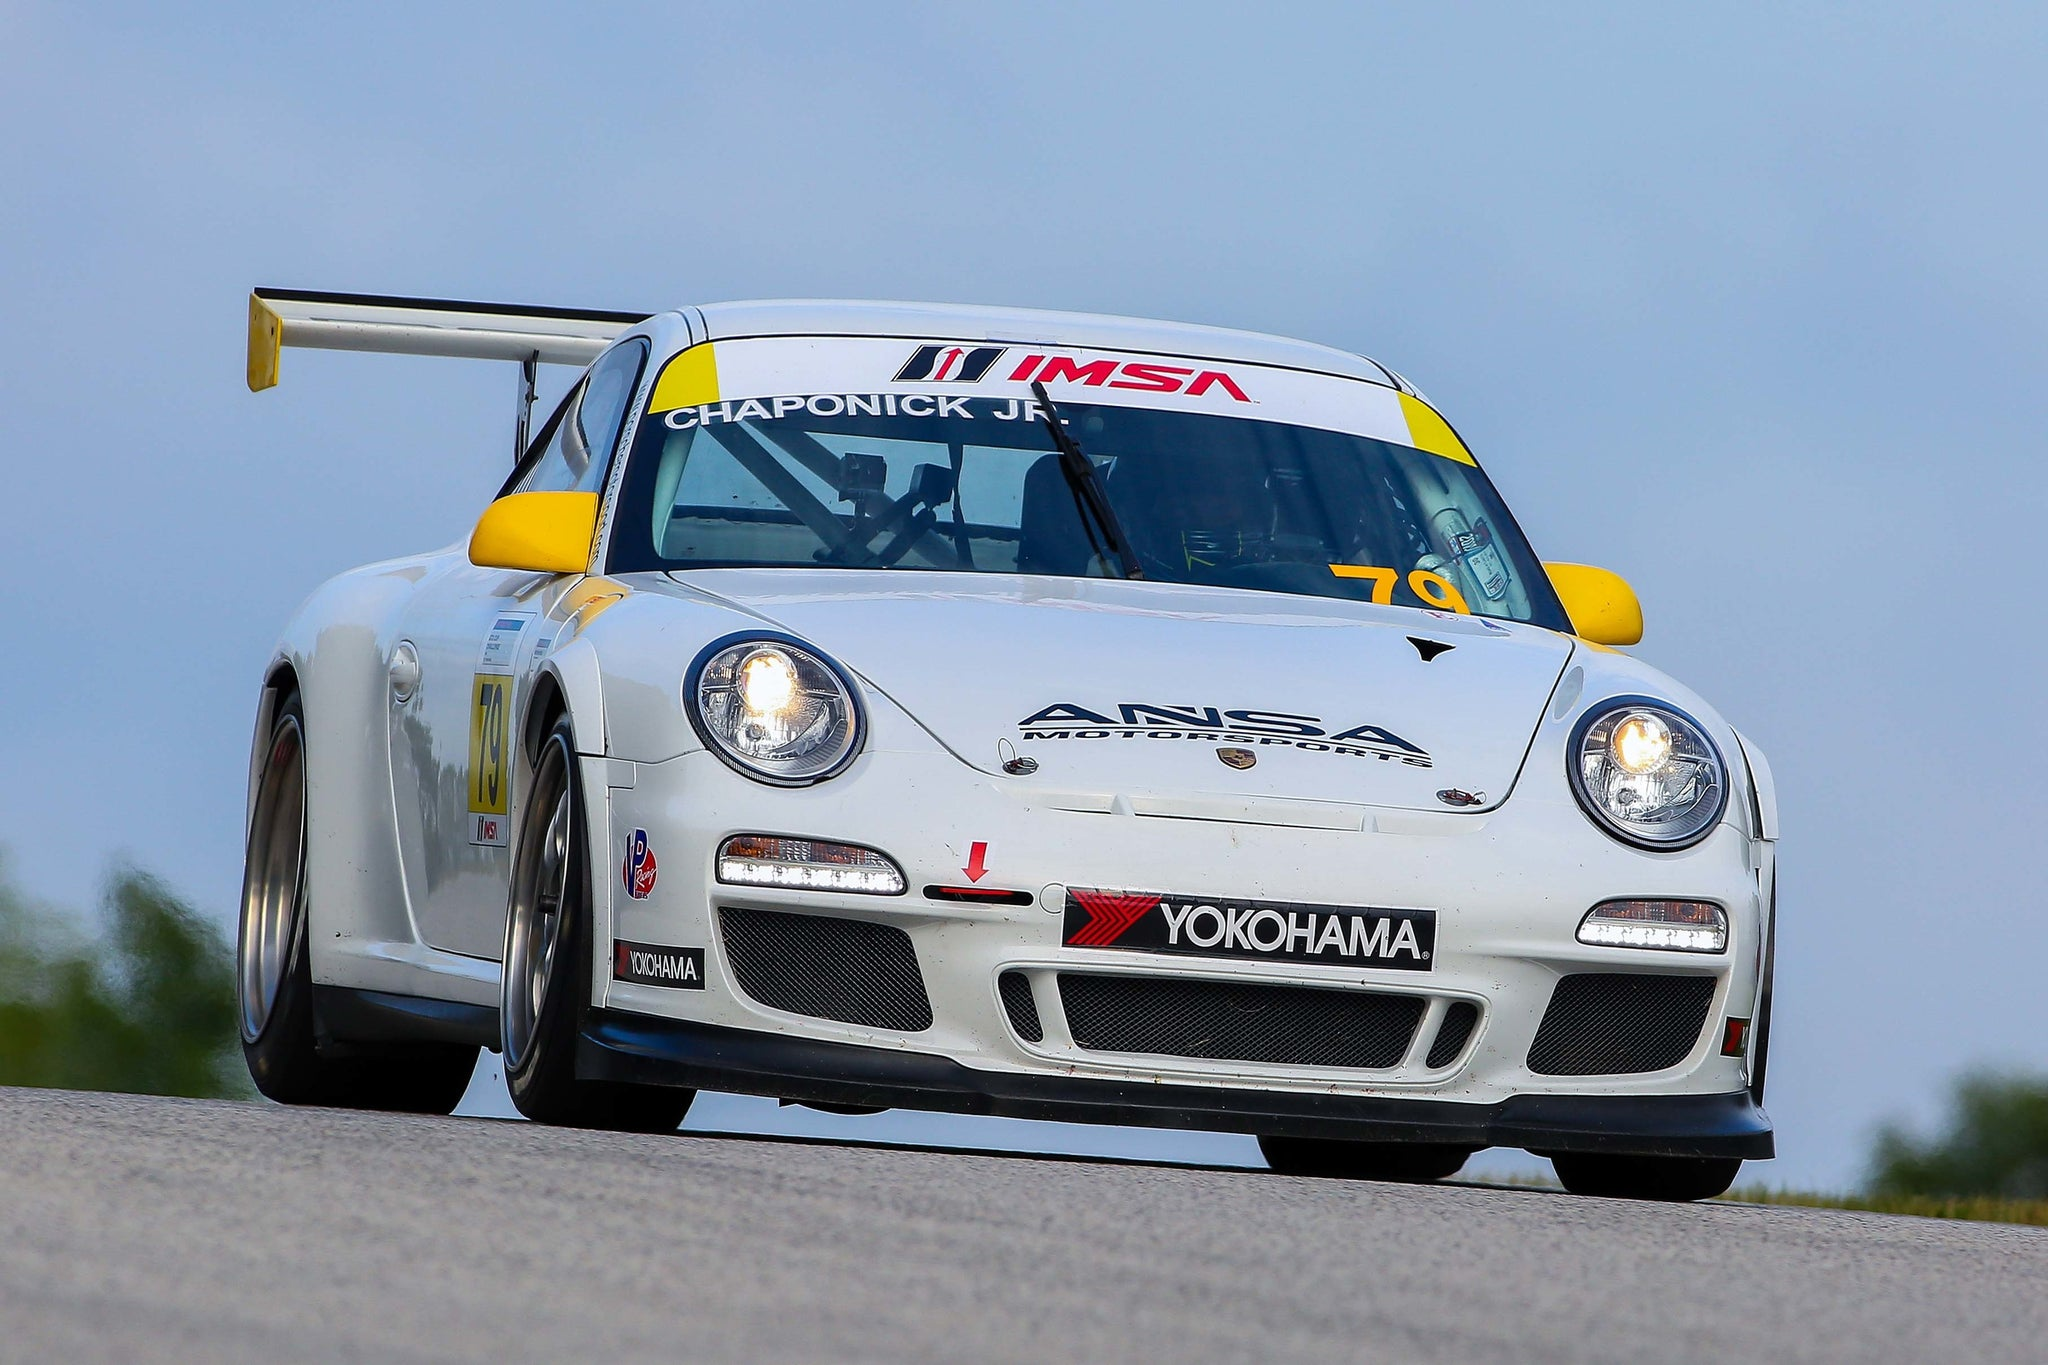 POSITIVE WEEKEND FOR ANSA MOTORSPORTS AT ROAD AMERICA